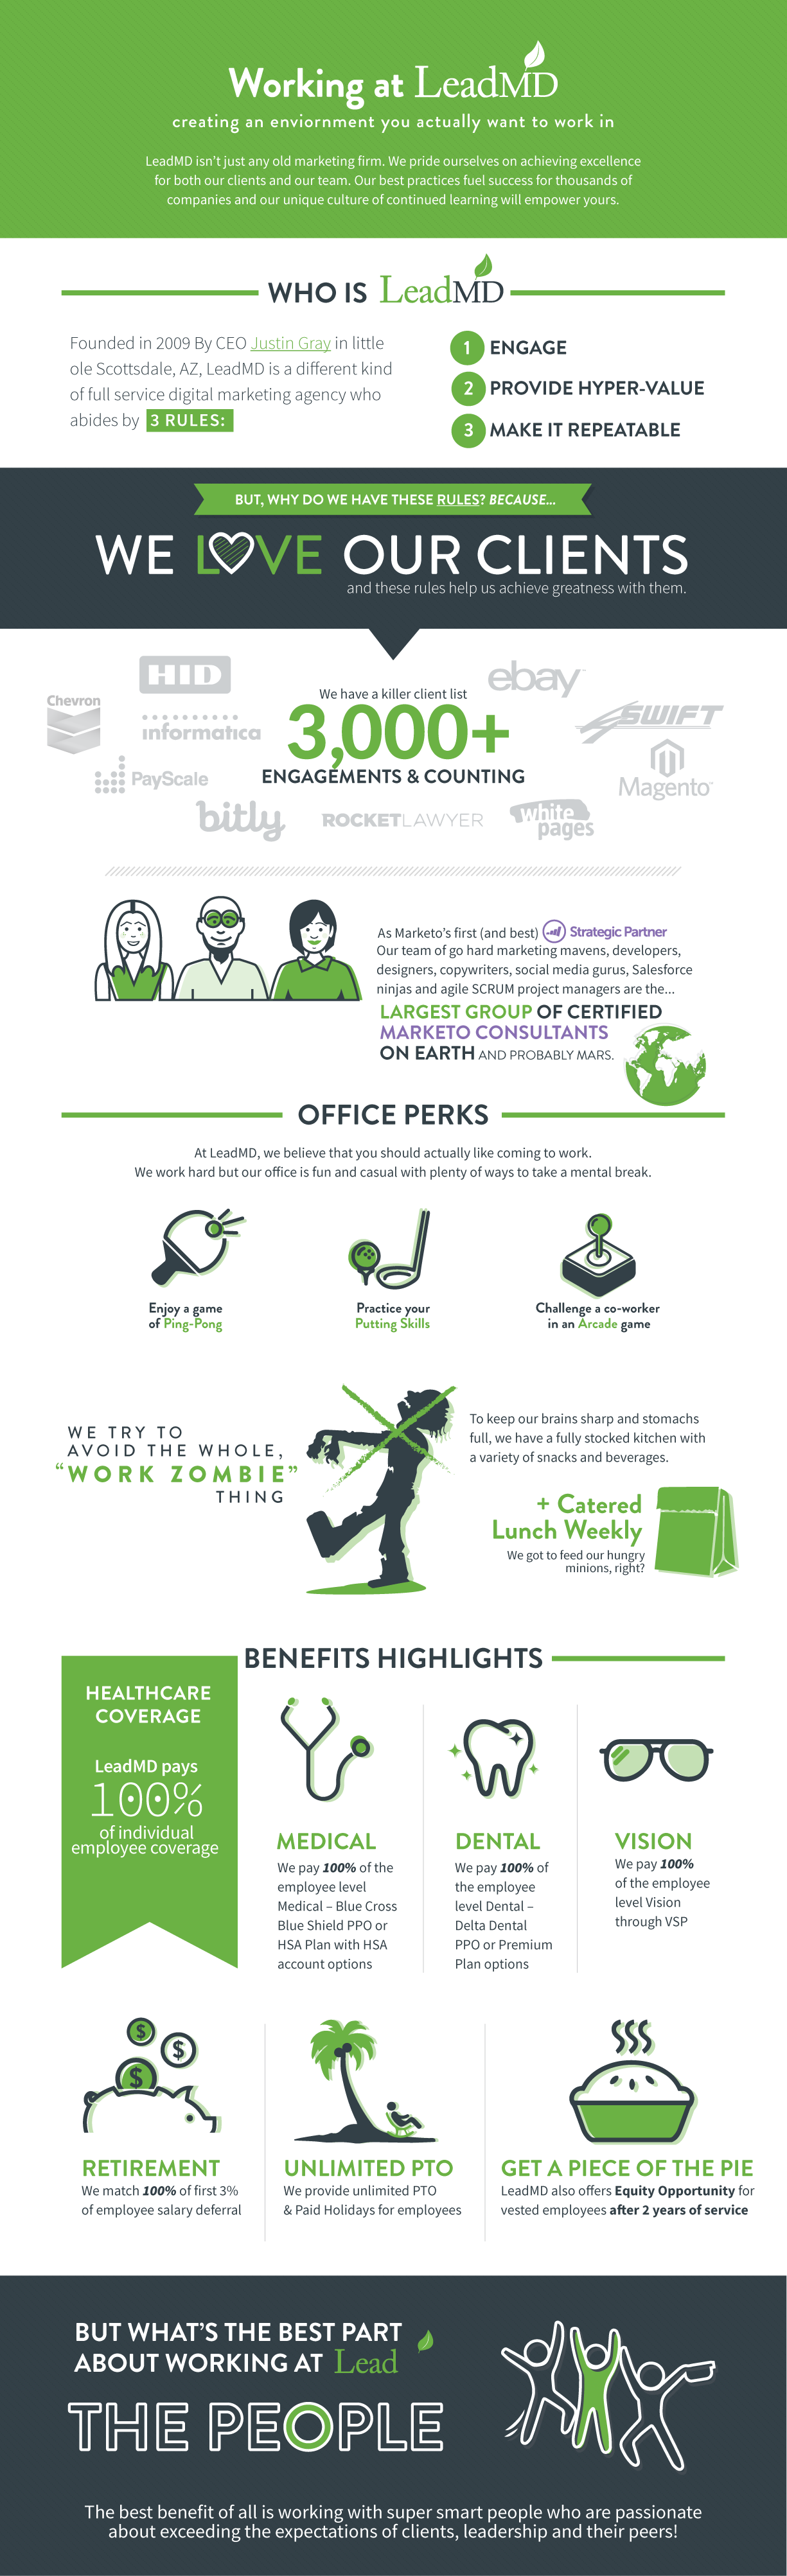 Work-at-leadmd-infographic